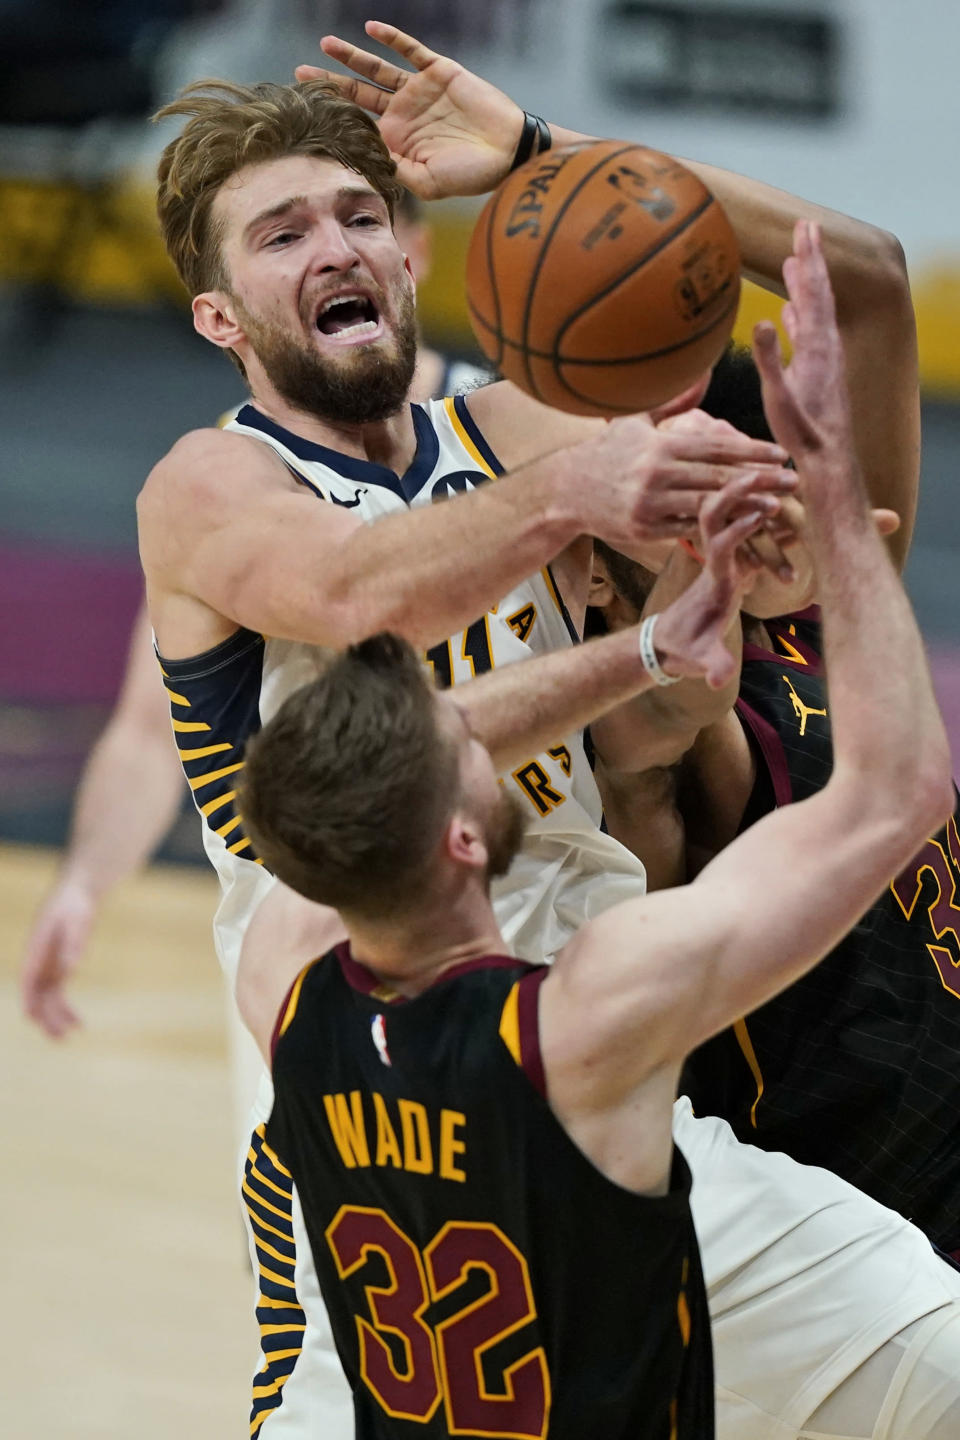 Indiana Pacers' Domantas Sabonis (11) loses control of the ball as Cleveland Cavaliers' Dean Wade (32) defends during the second half of an NBA basketball game Wednesday, March 3, 2021, in Cleveland. (AP Photo/Tony Dejak)